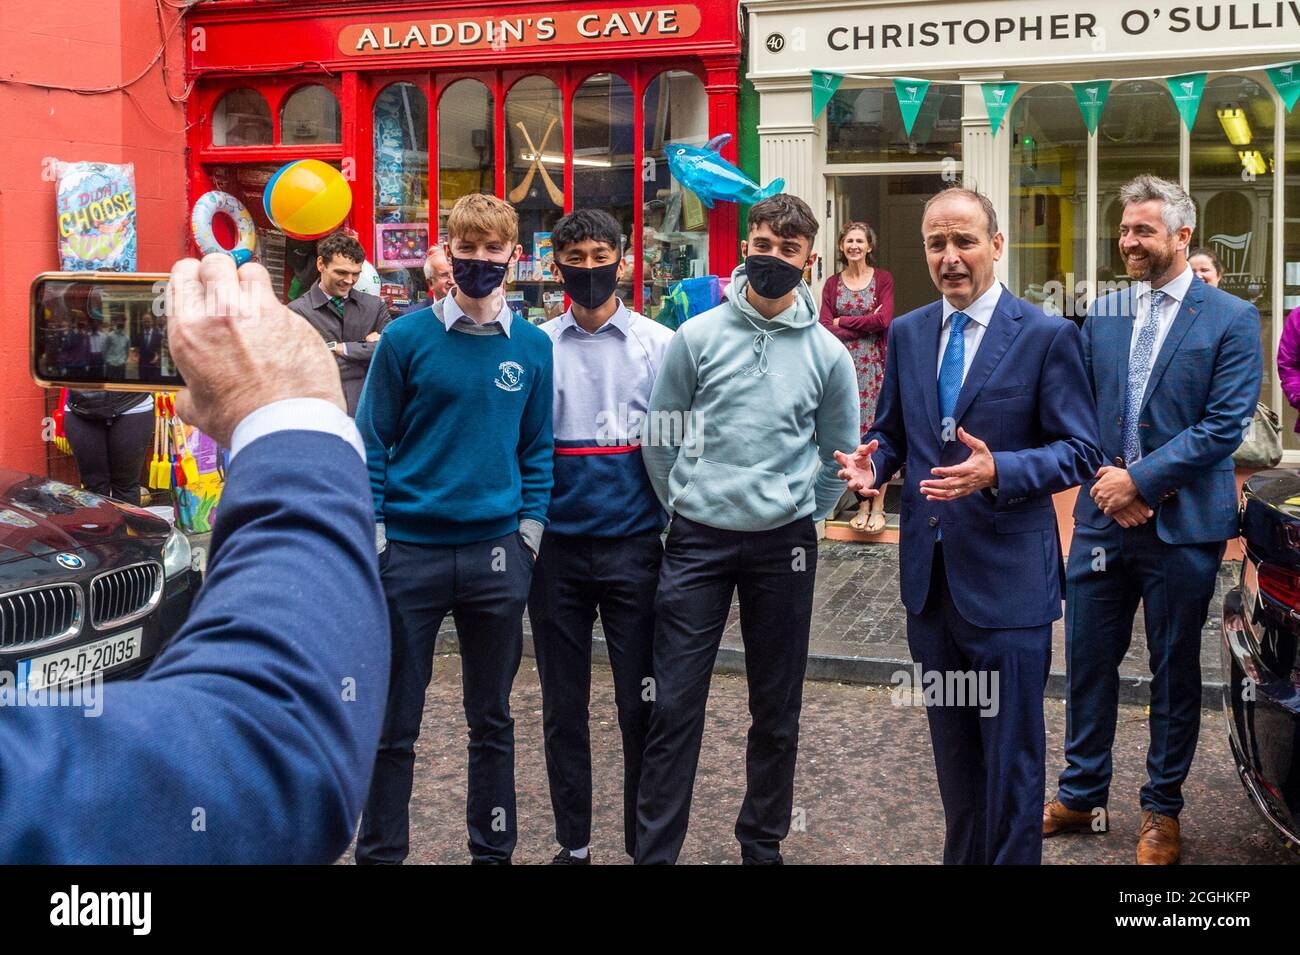 clonakilty-west-cork-ireland-11th-sep-2020-an-taoiseach-michel-martin-visited-the-office-of-party-colleague-and-new-td-christopher-osullivan-this-afternoon-in-ashe-street-clonakilty-schoolboys-ben-reilly-harold-paulino-and-adam-kelly-from-clonakilty-community-college-persuaded-the-taoiseach-to-make-a-video-explaining-to-their-teacher-why-they-were-going-to-be-late-back-to-school-credit-ag-newsalamy-live-news-2CGHKFP.jpg